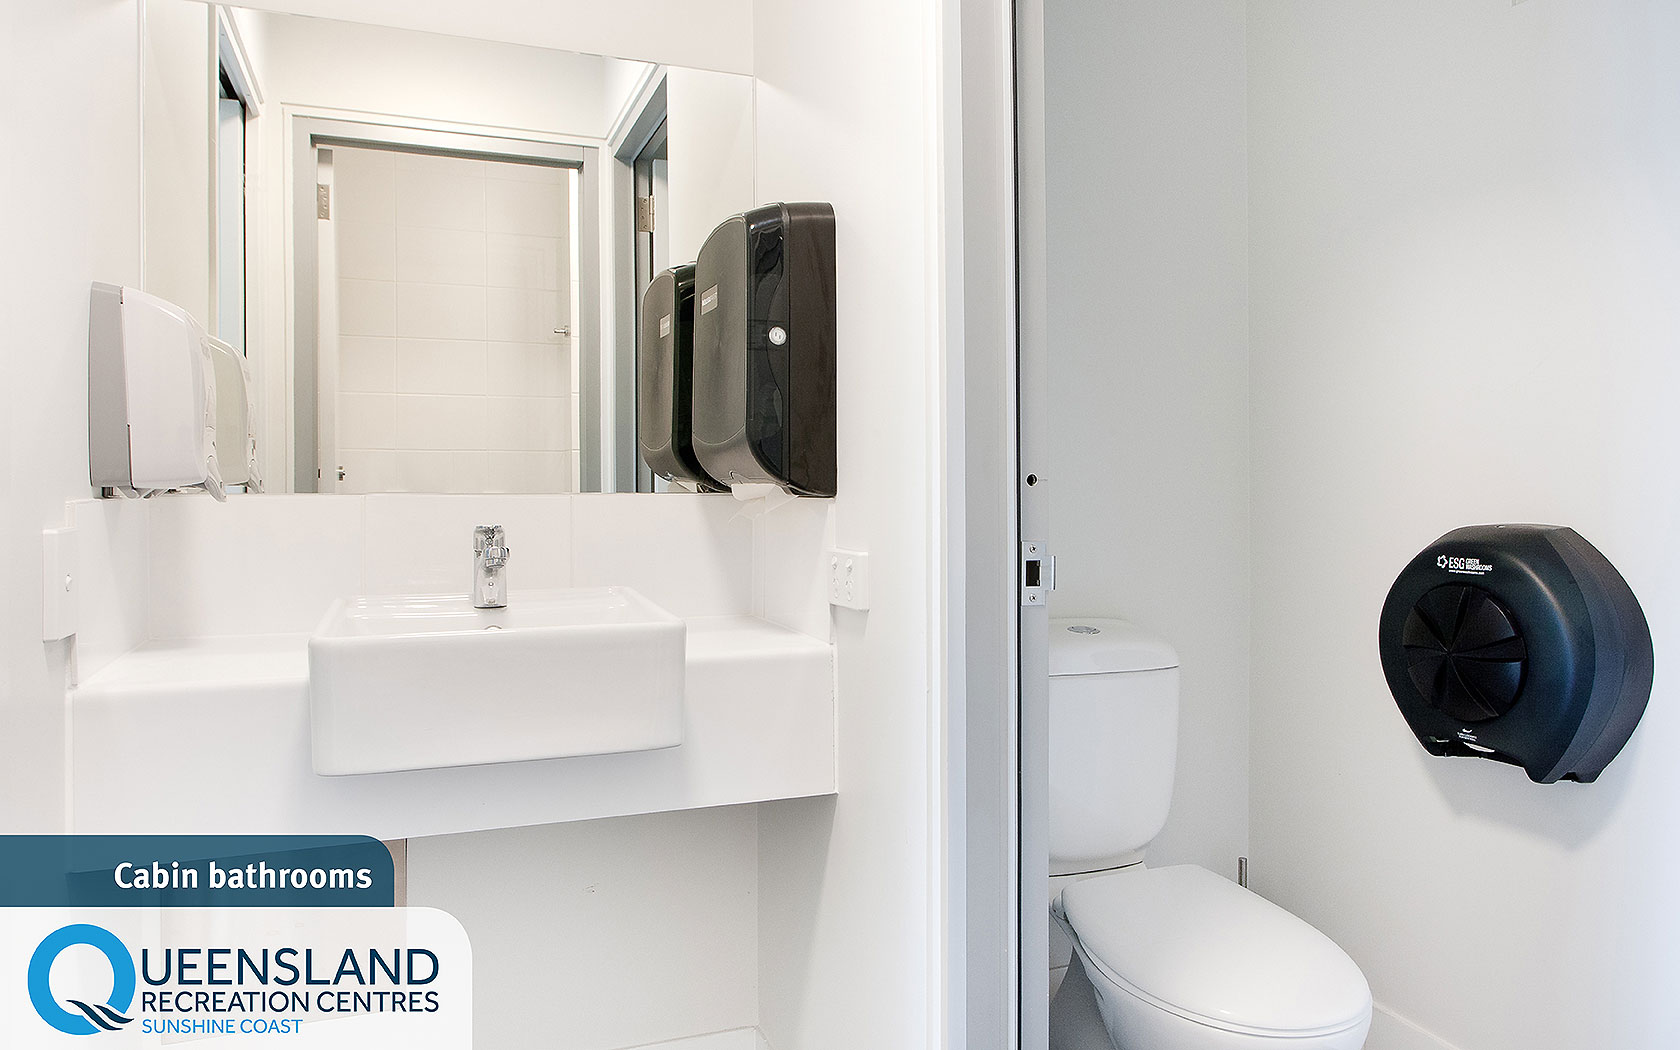 Standard cabin bathroom with toilet, sink, mirror and accessible dispensers at the Sunshine Coast Recreation Centre